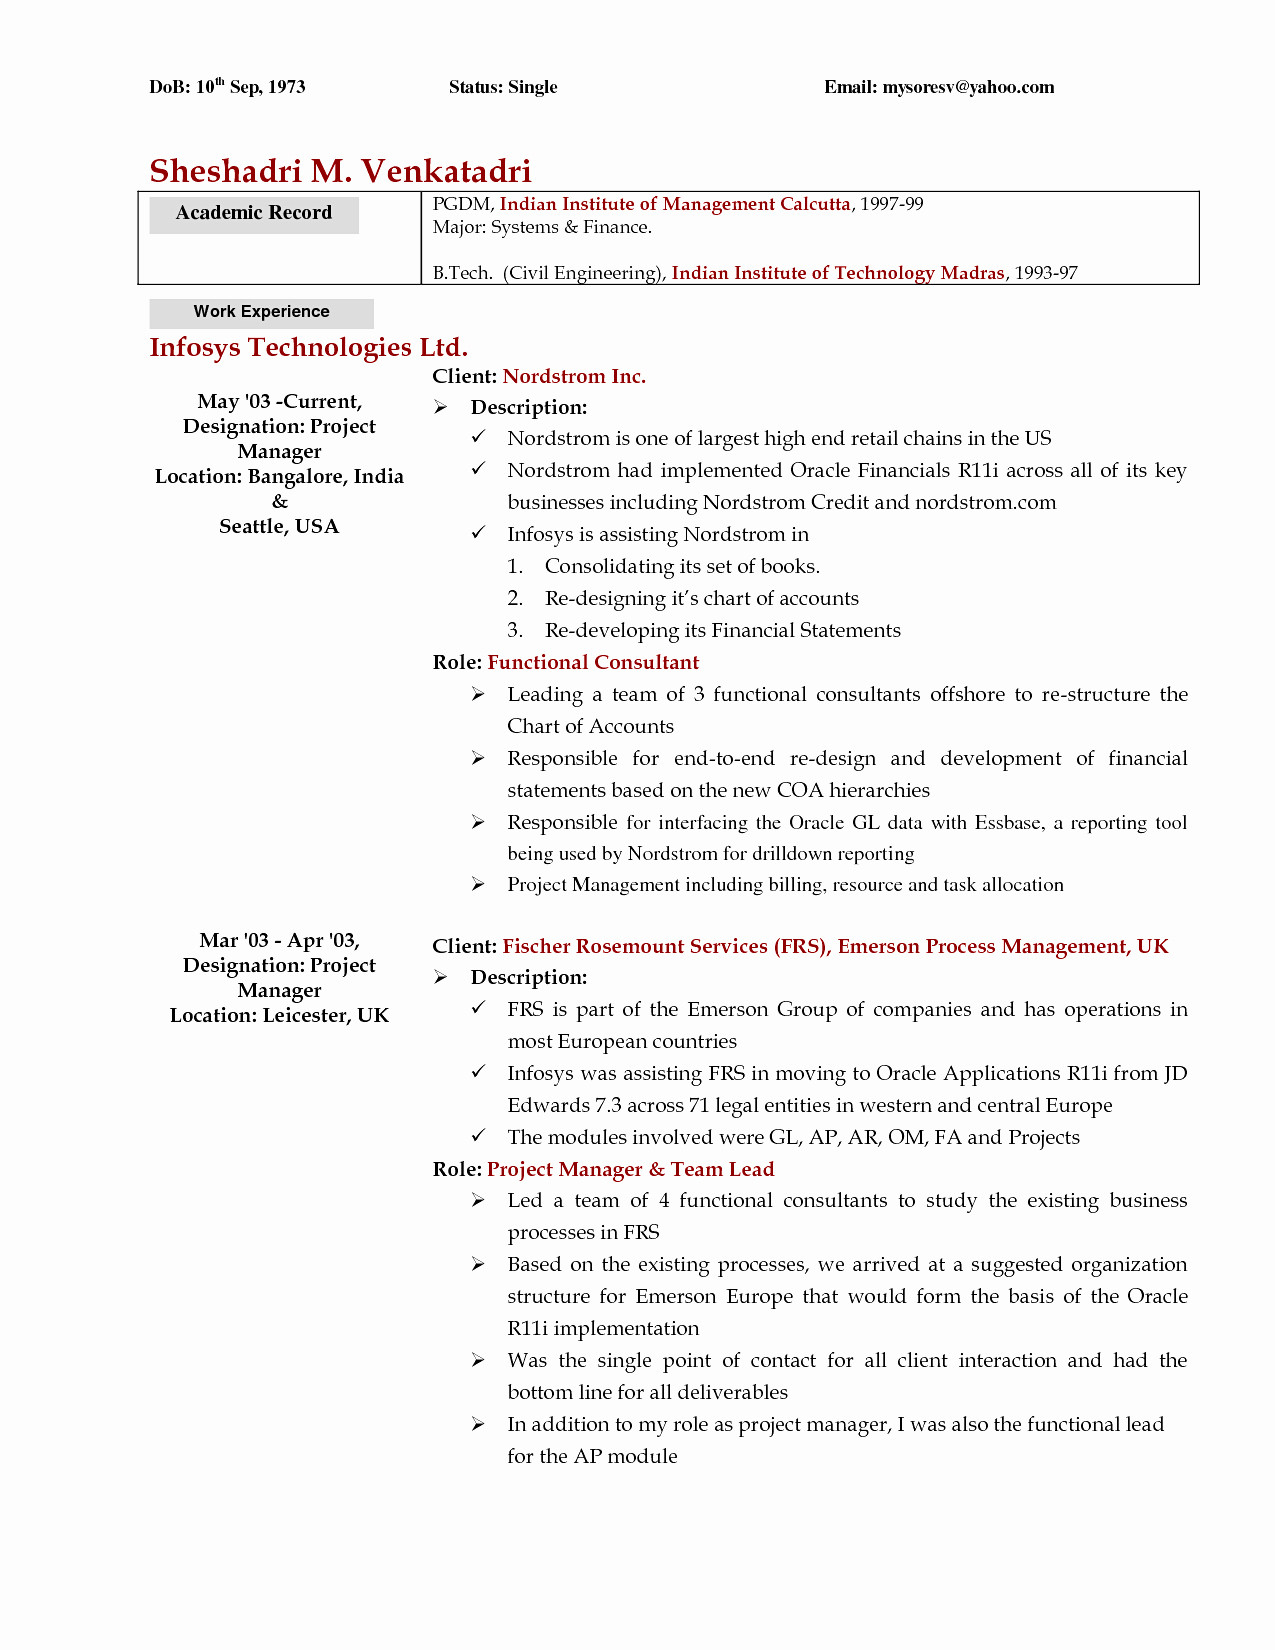 Downloadable Letter Of Recommendation Template - Effective Resume Templates Reference Sample Rn Resume Best Od